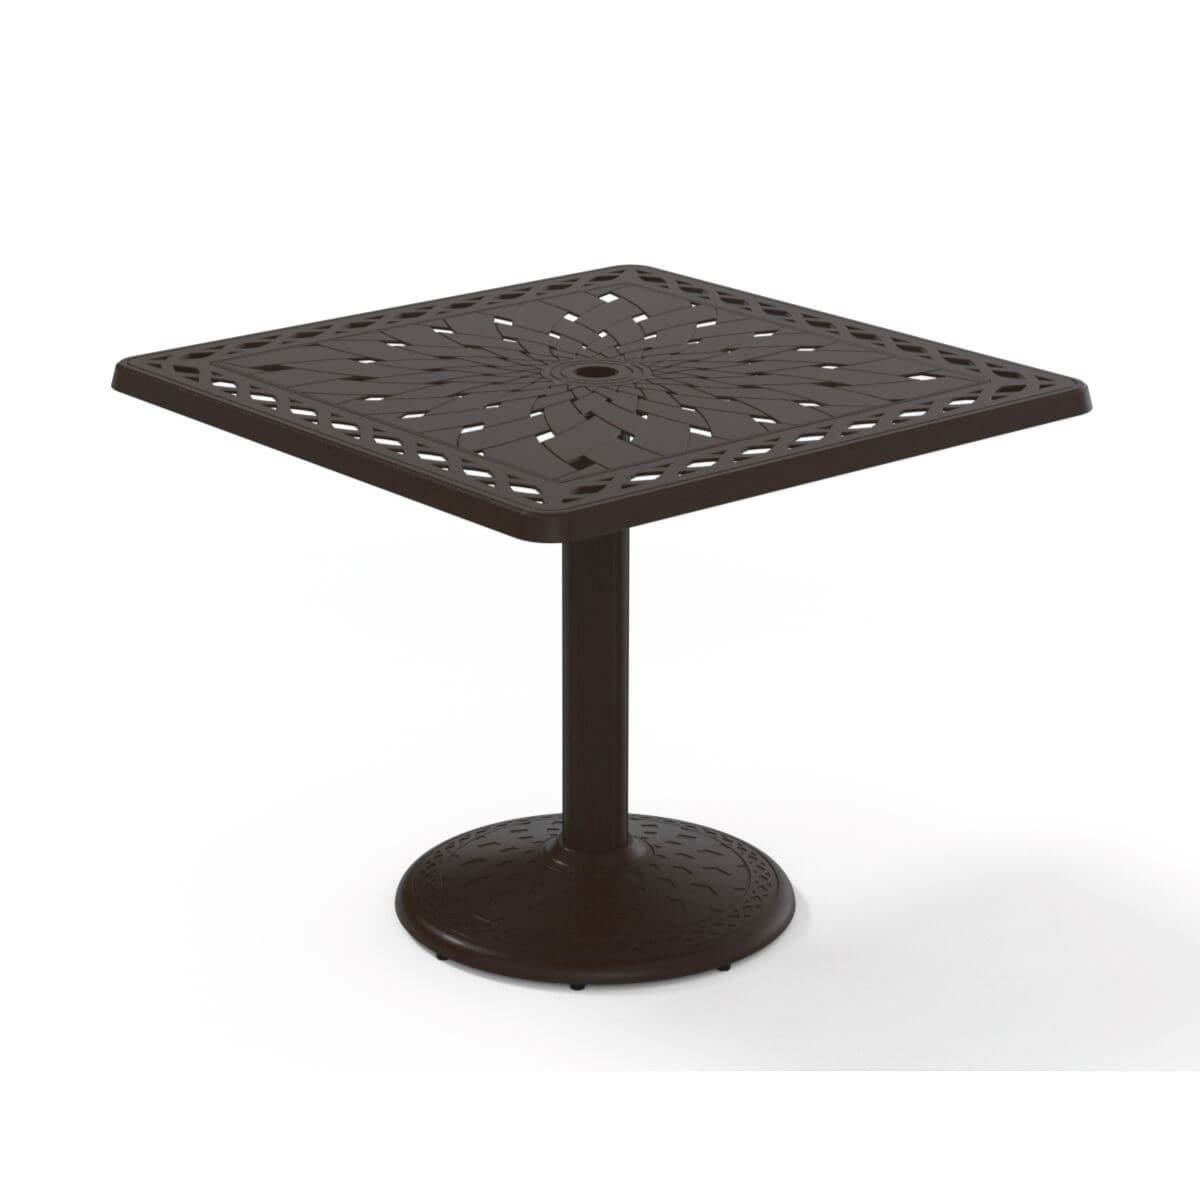 Fine Telescope Square Dining Table 36 Inch Cast Aluminum With Pedestal Base Interior Design Ideas Clesiryabchikinfo